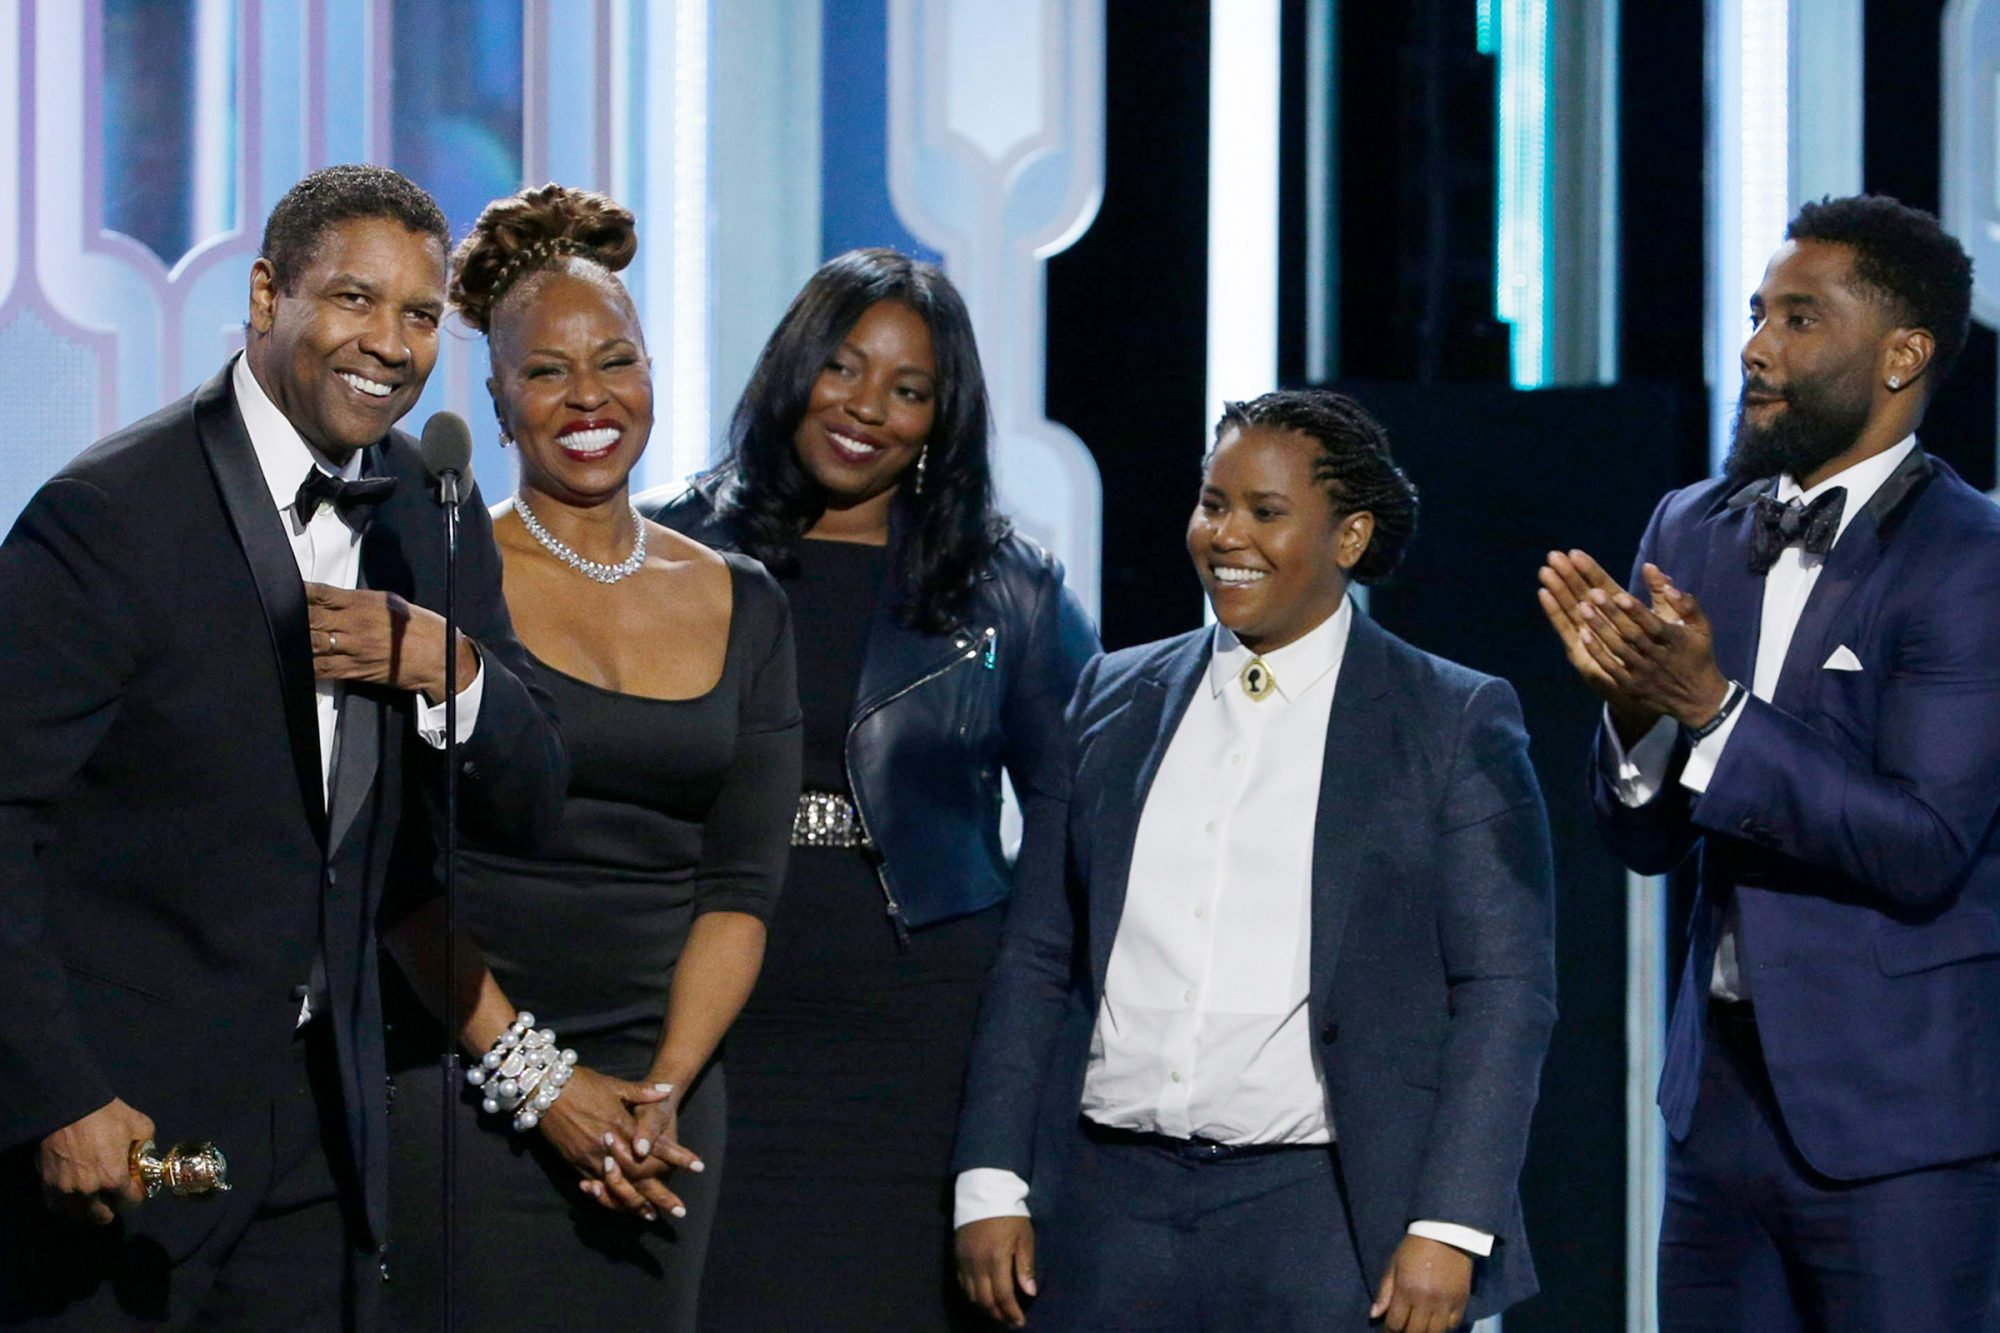 Denzel Washington accepts with Cecil B. Demille Award with his family during the 73rd Annual Golden Globe Awards at The Beverly Hilton Hotel on January 10, 2016 in Beverly Hills, California